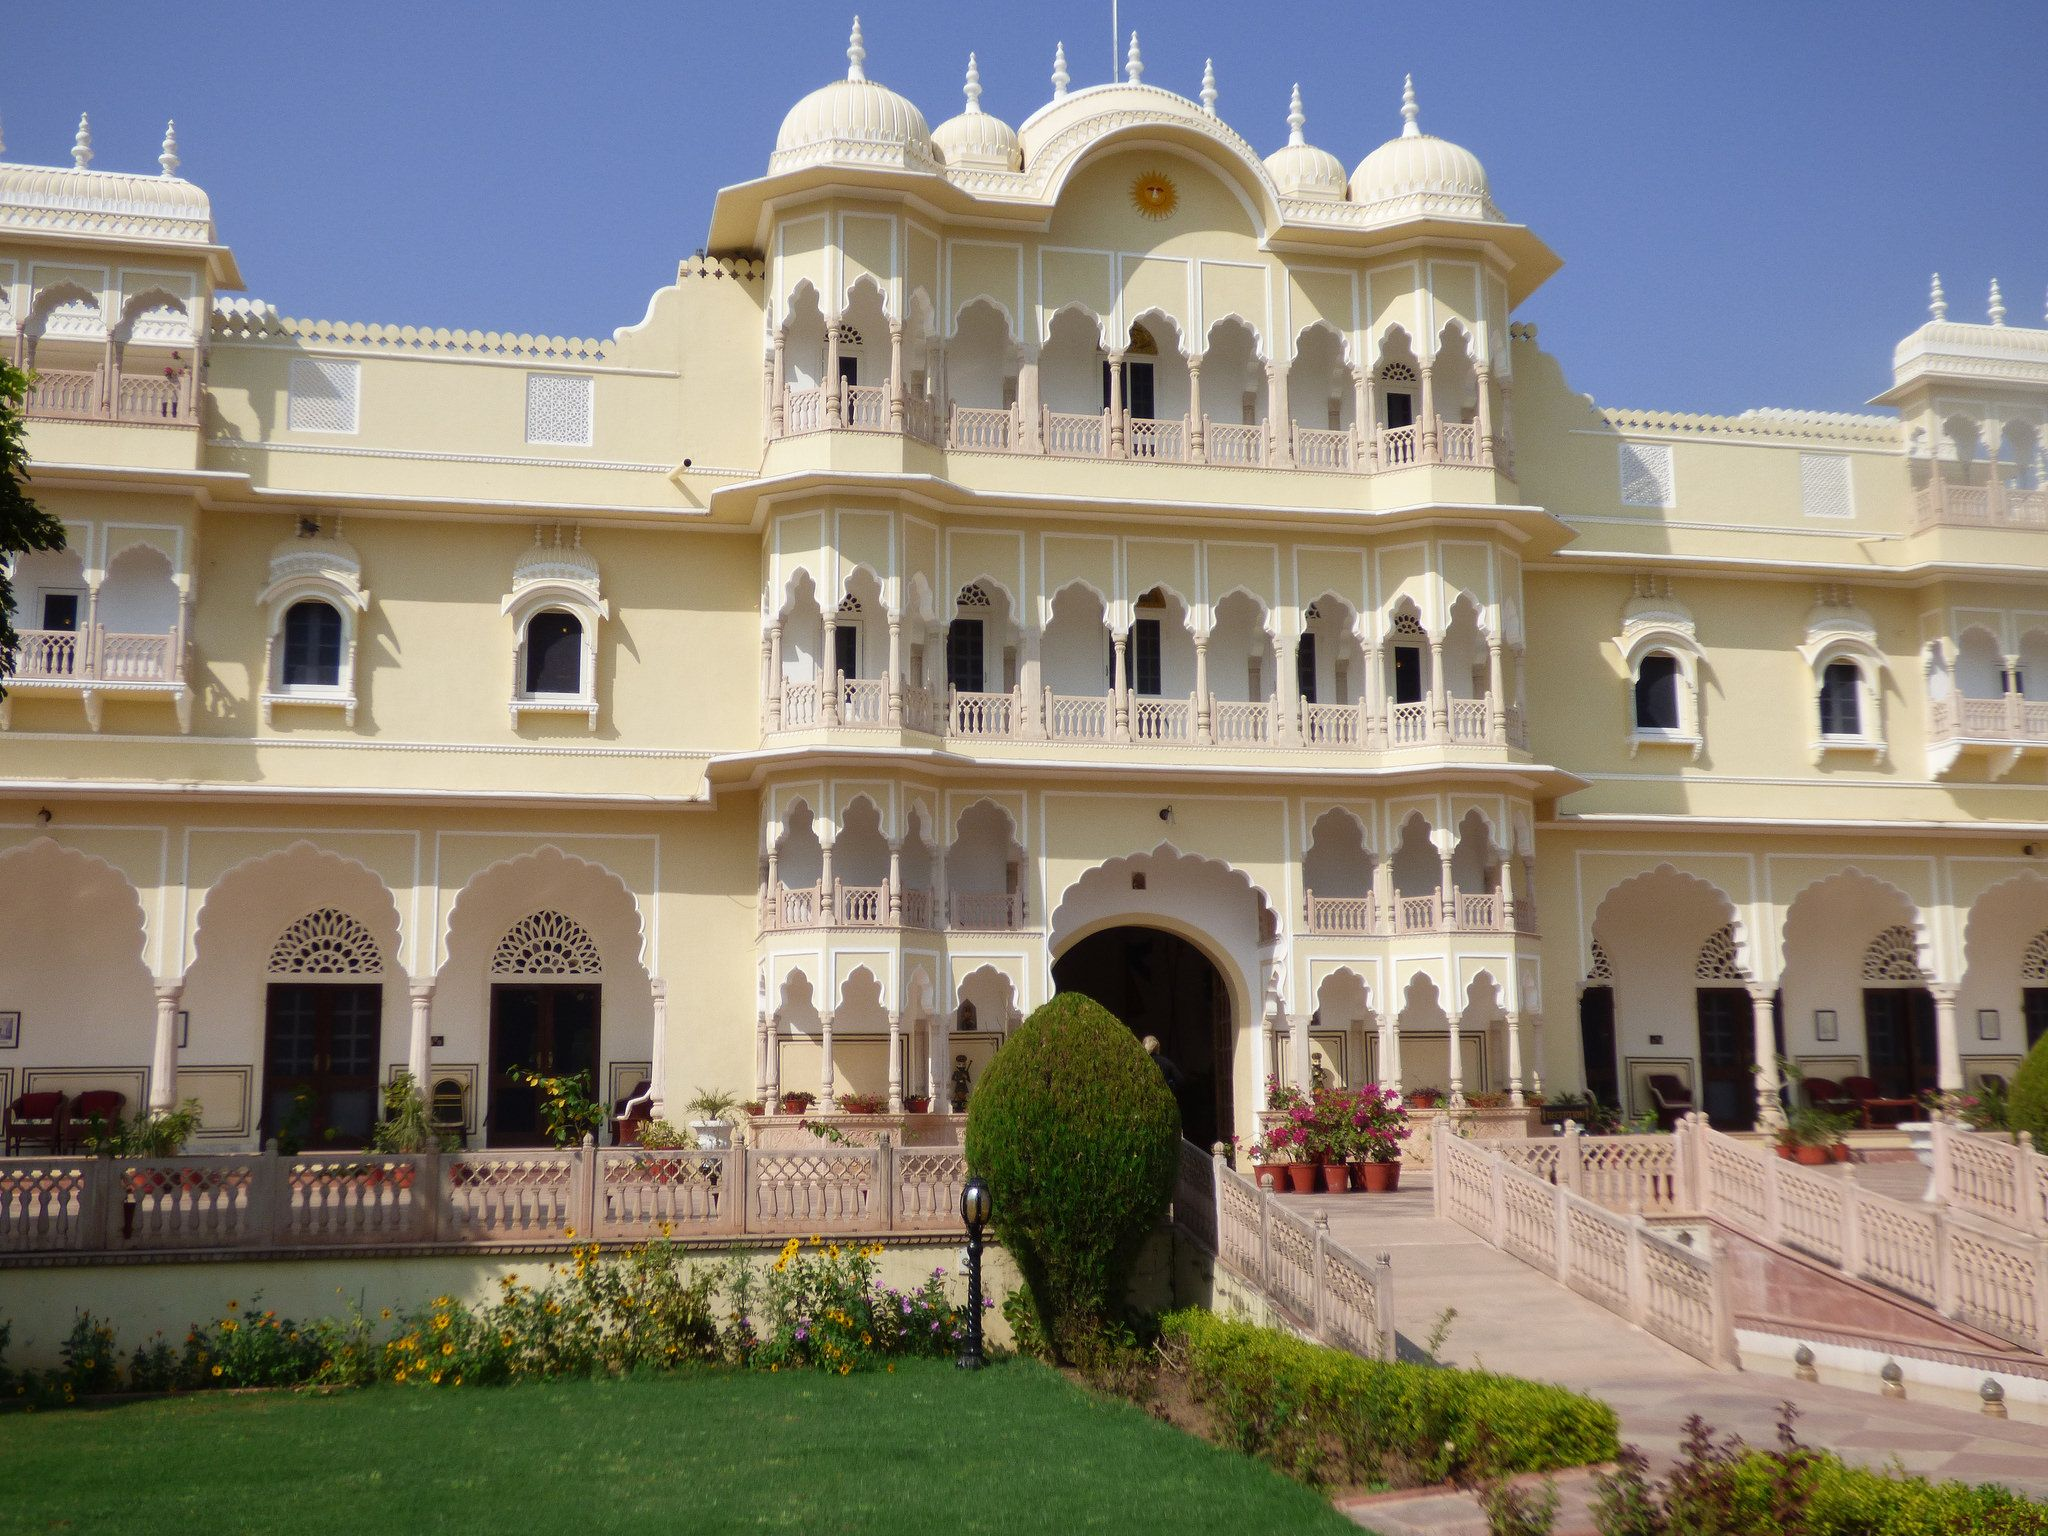 https://flic.kr/p/zxAN3g | Nahargarh Hotel | Nahargarh, the most luxurious hotel lies nestled at the foot hills of 'Aravali ranges' neighbouring the Ranthambhore National Park.